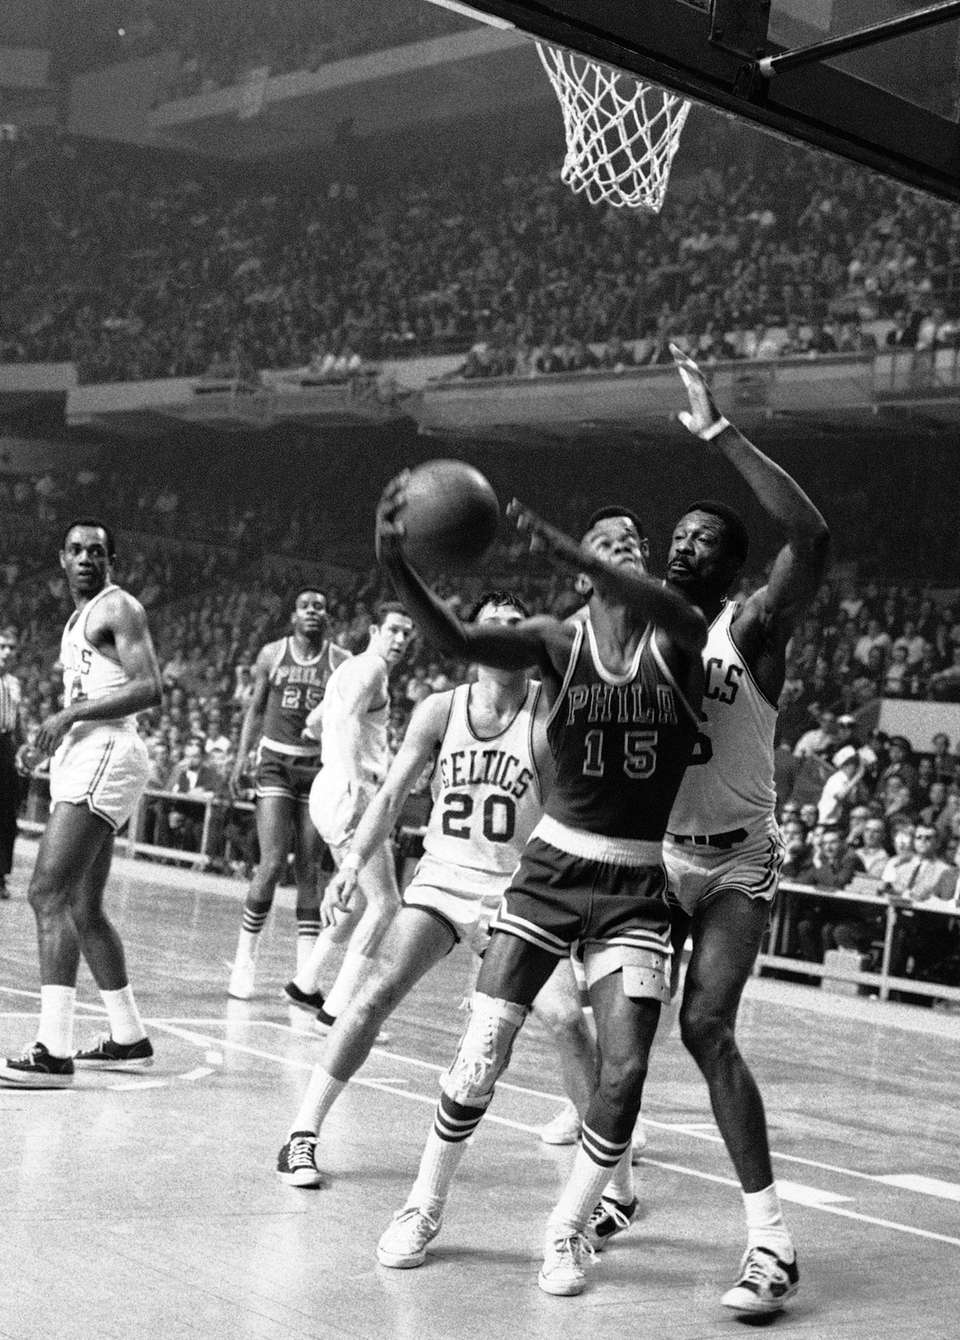 Hal Greer, a Hall of Fame guard and